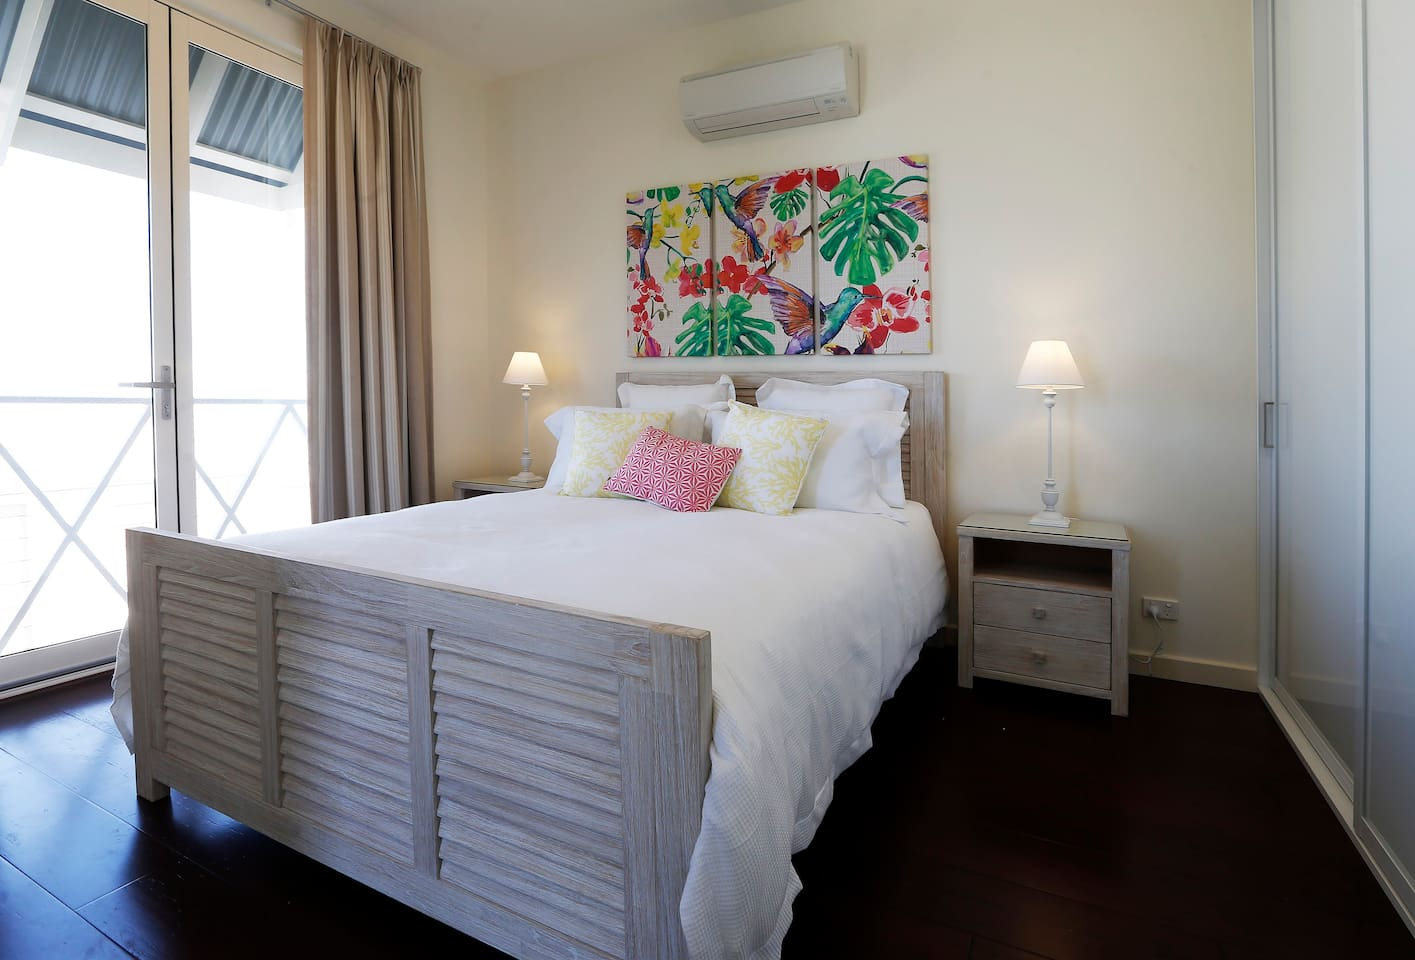 Upstairs bedroom with view of the beautiful Willunga Hills and ensuite facilities